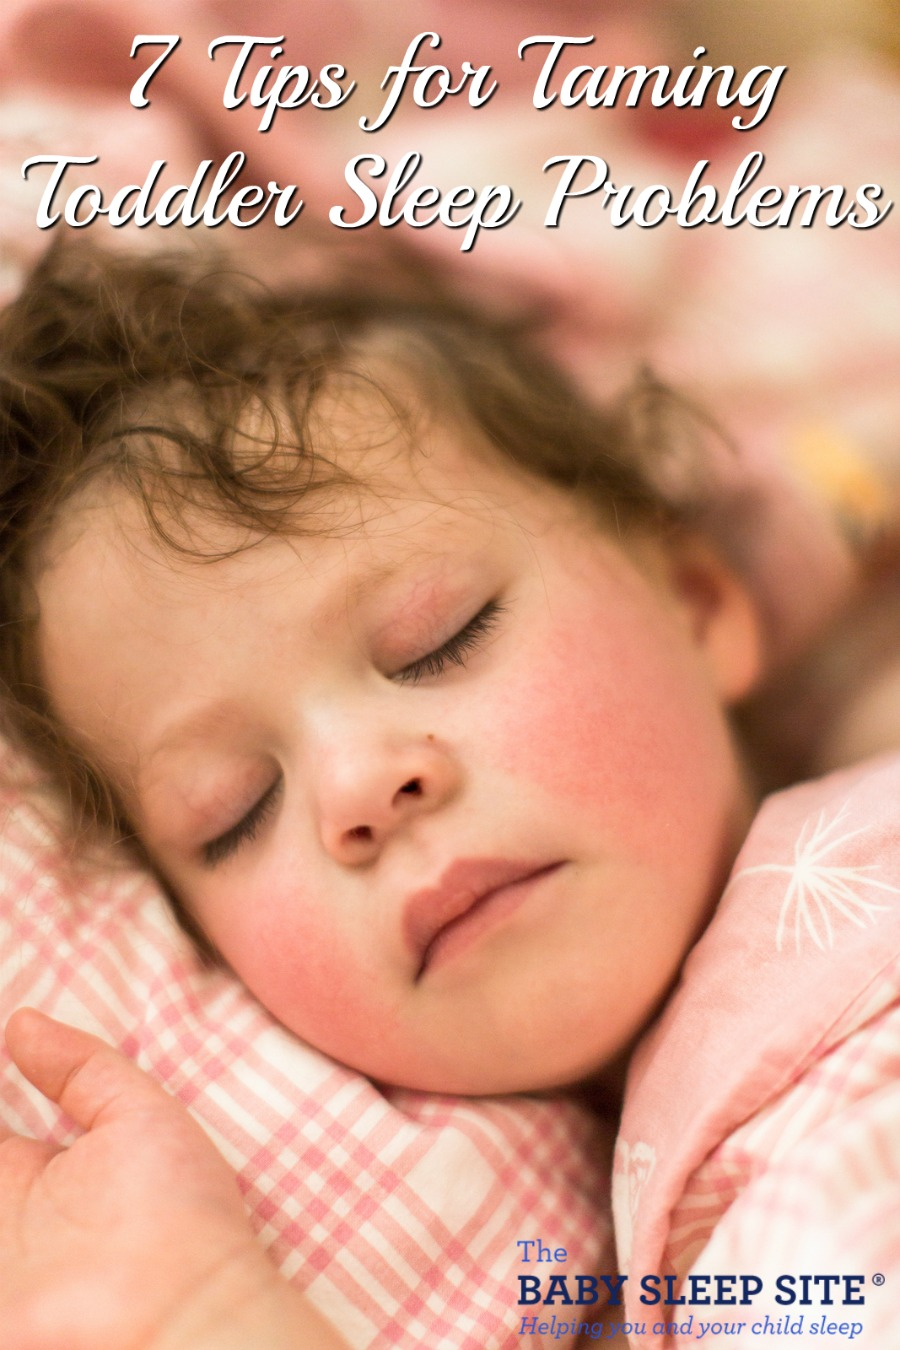 7 Tips for Taming Toddler Sleep Problems